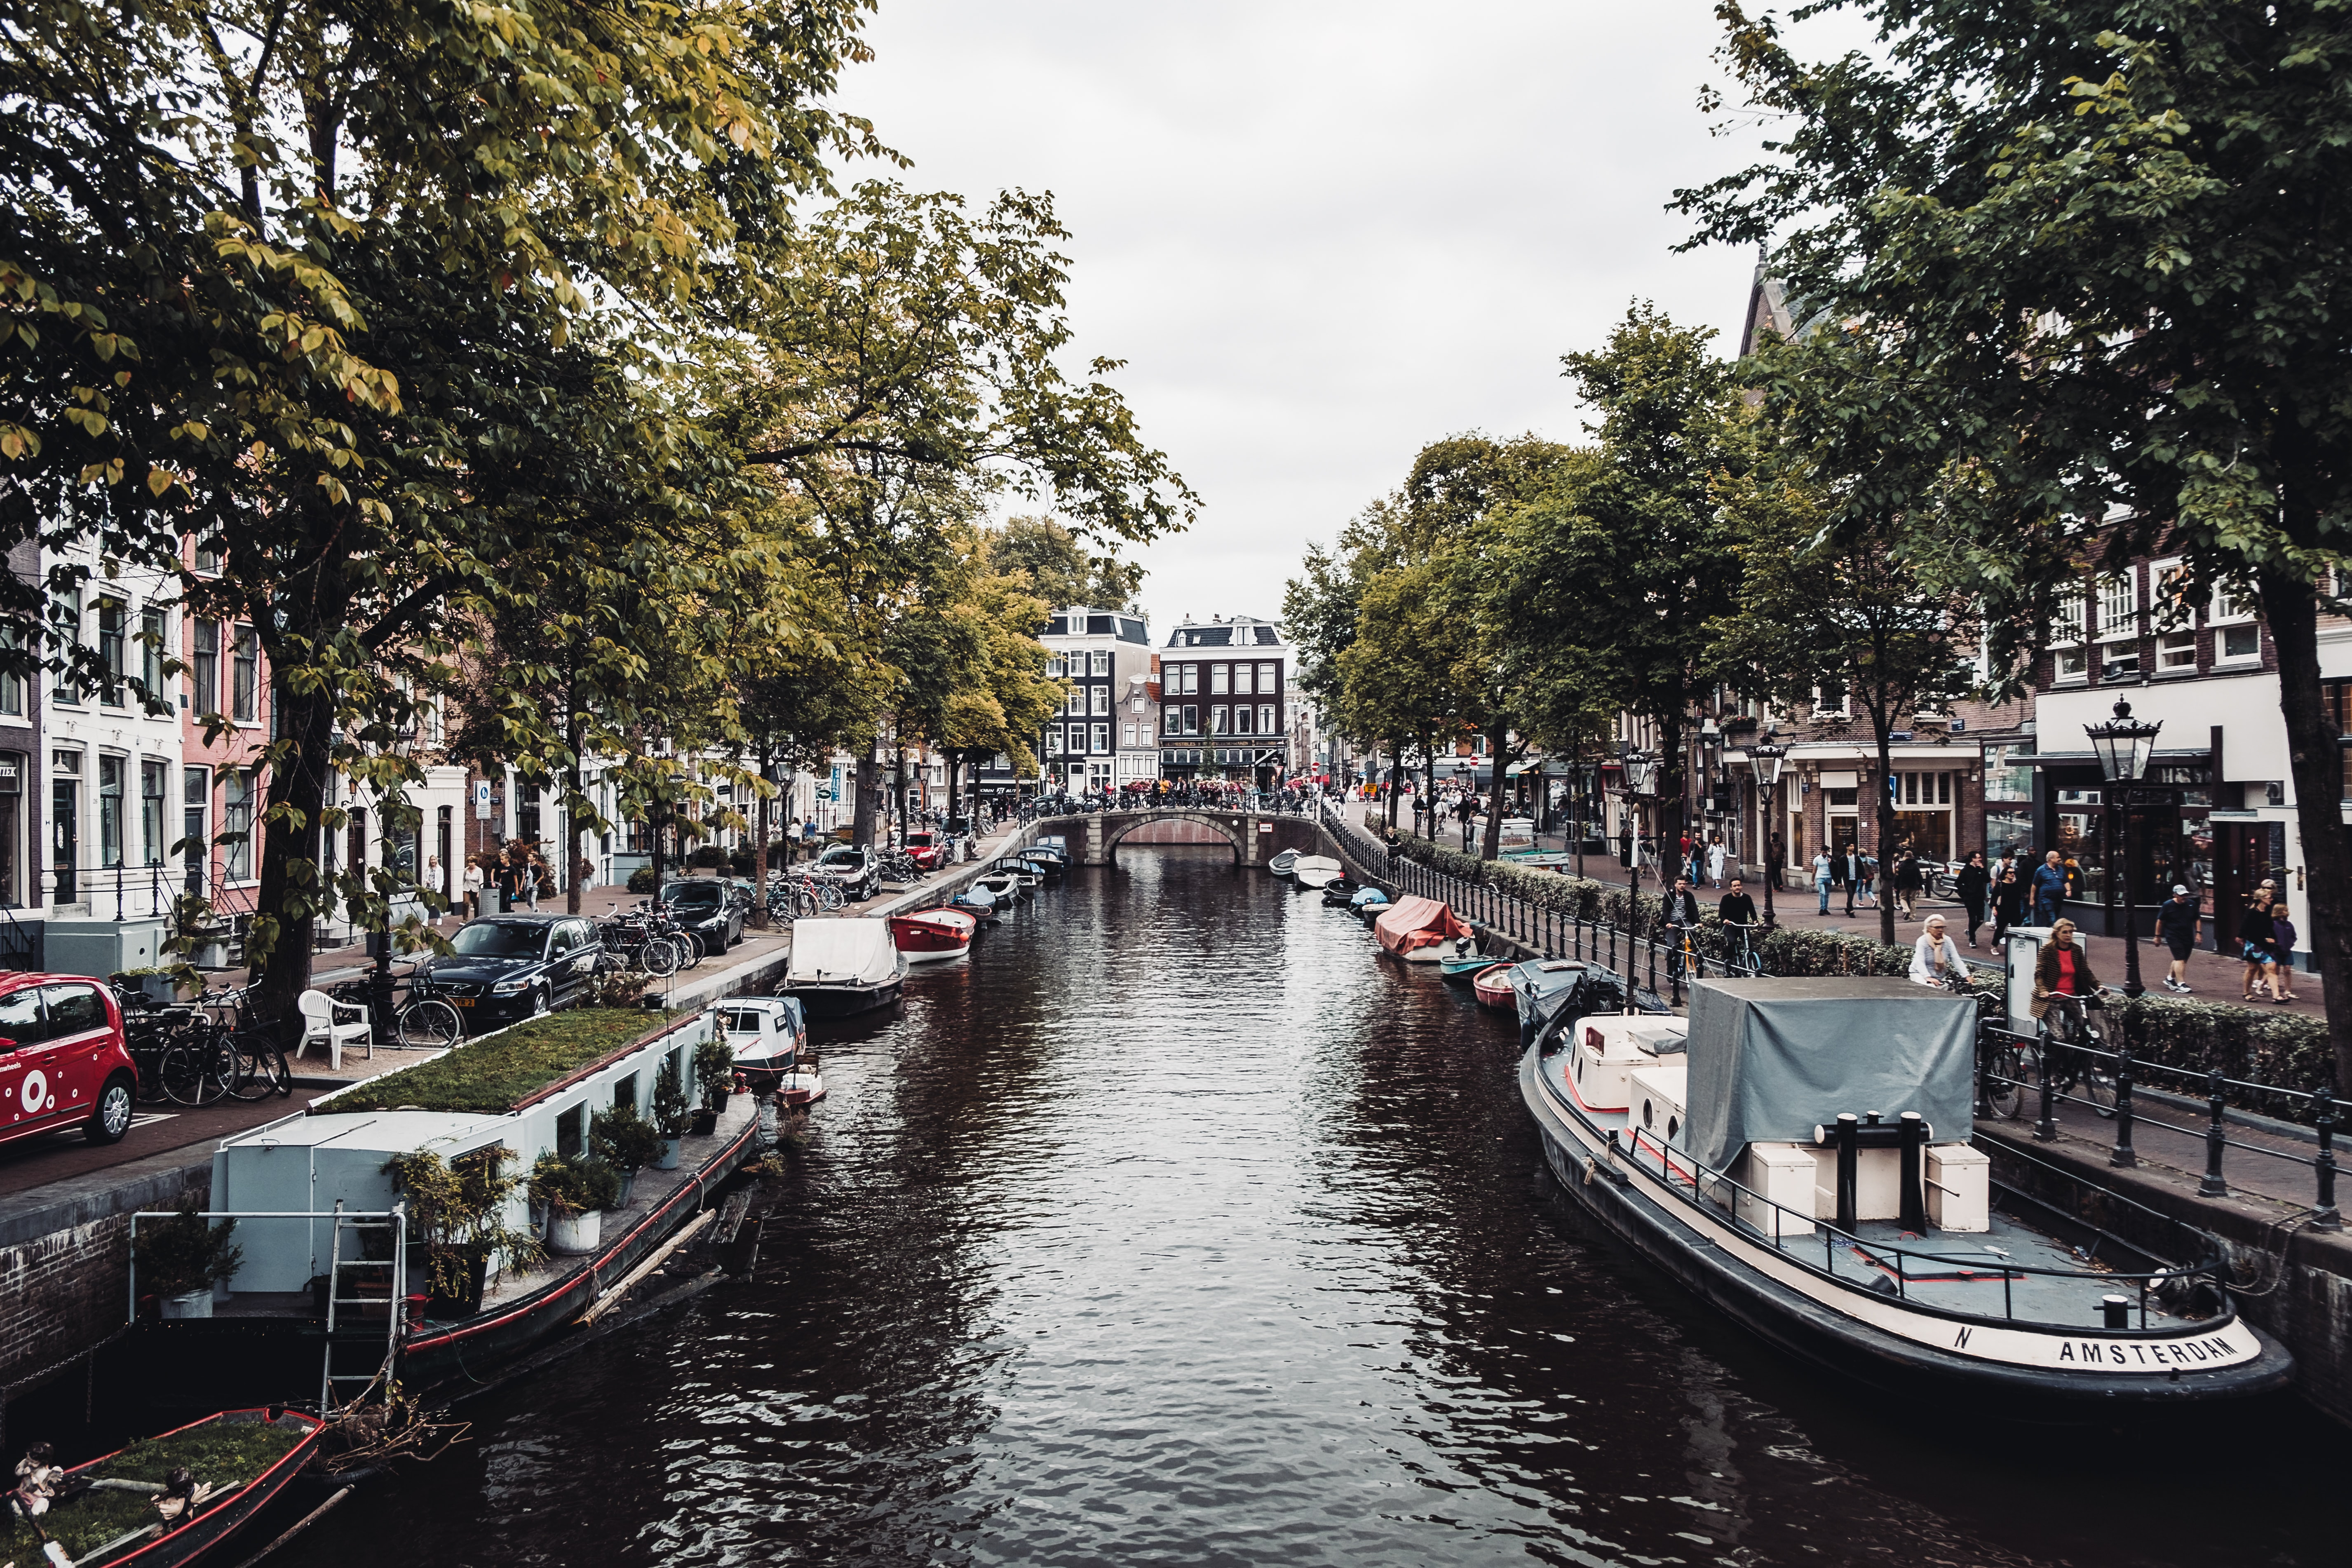 boats on canal during daytime